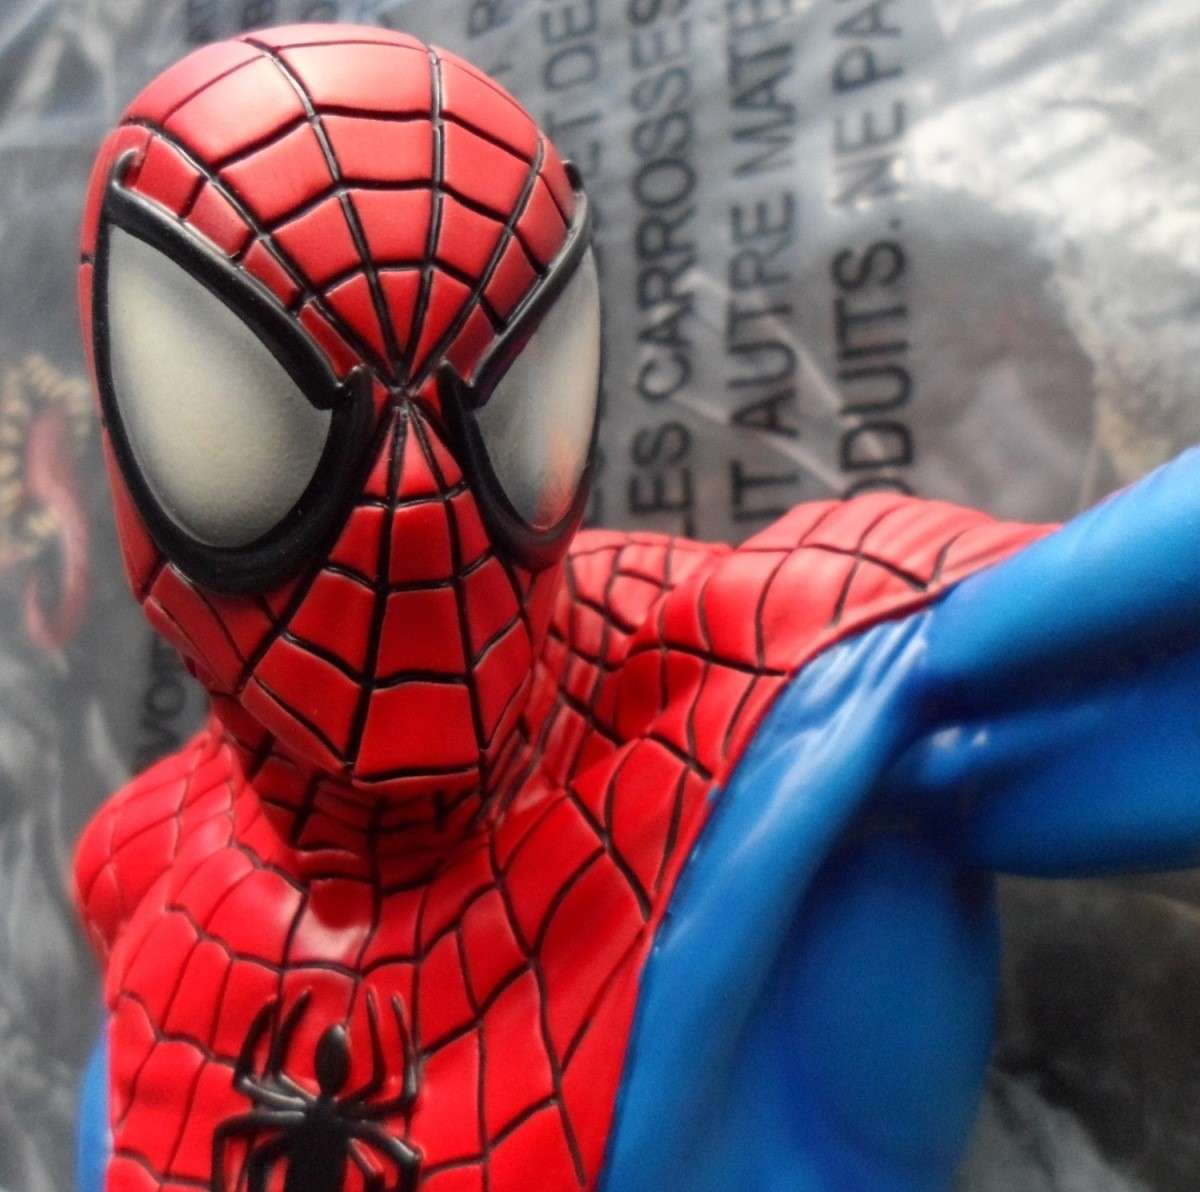 SPIDERMAN RED AND BLUE MINI BUST GENTLE GIANT Spider13